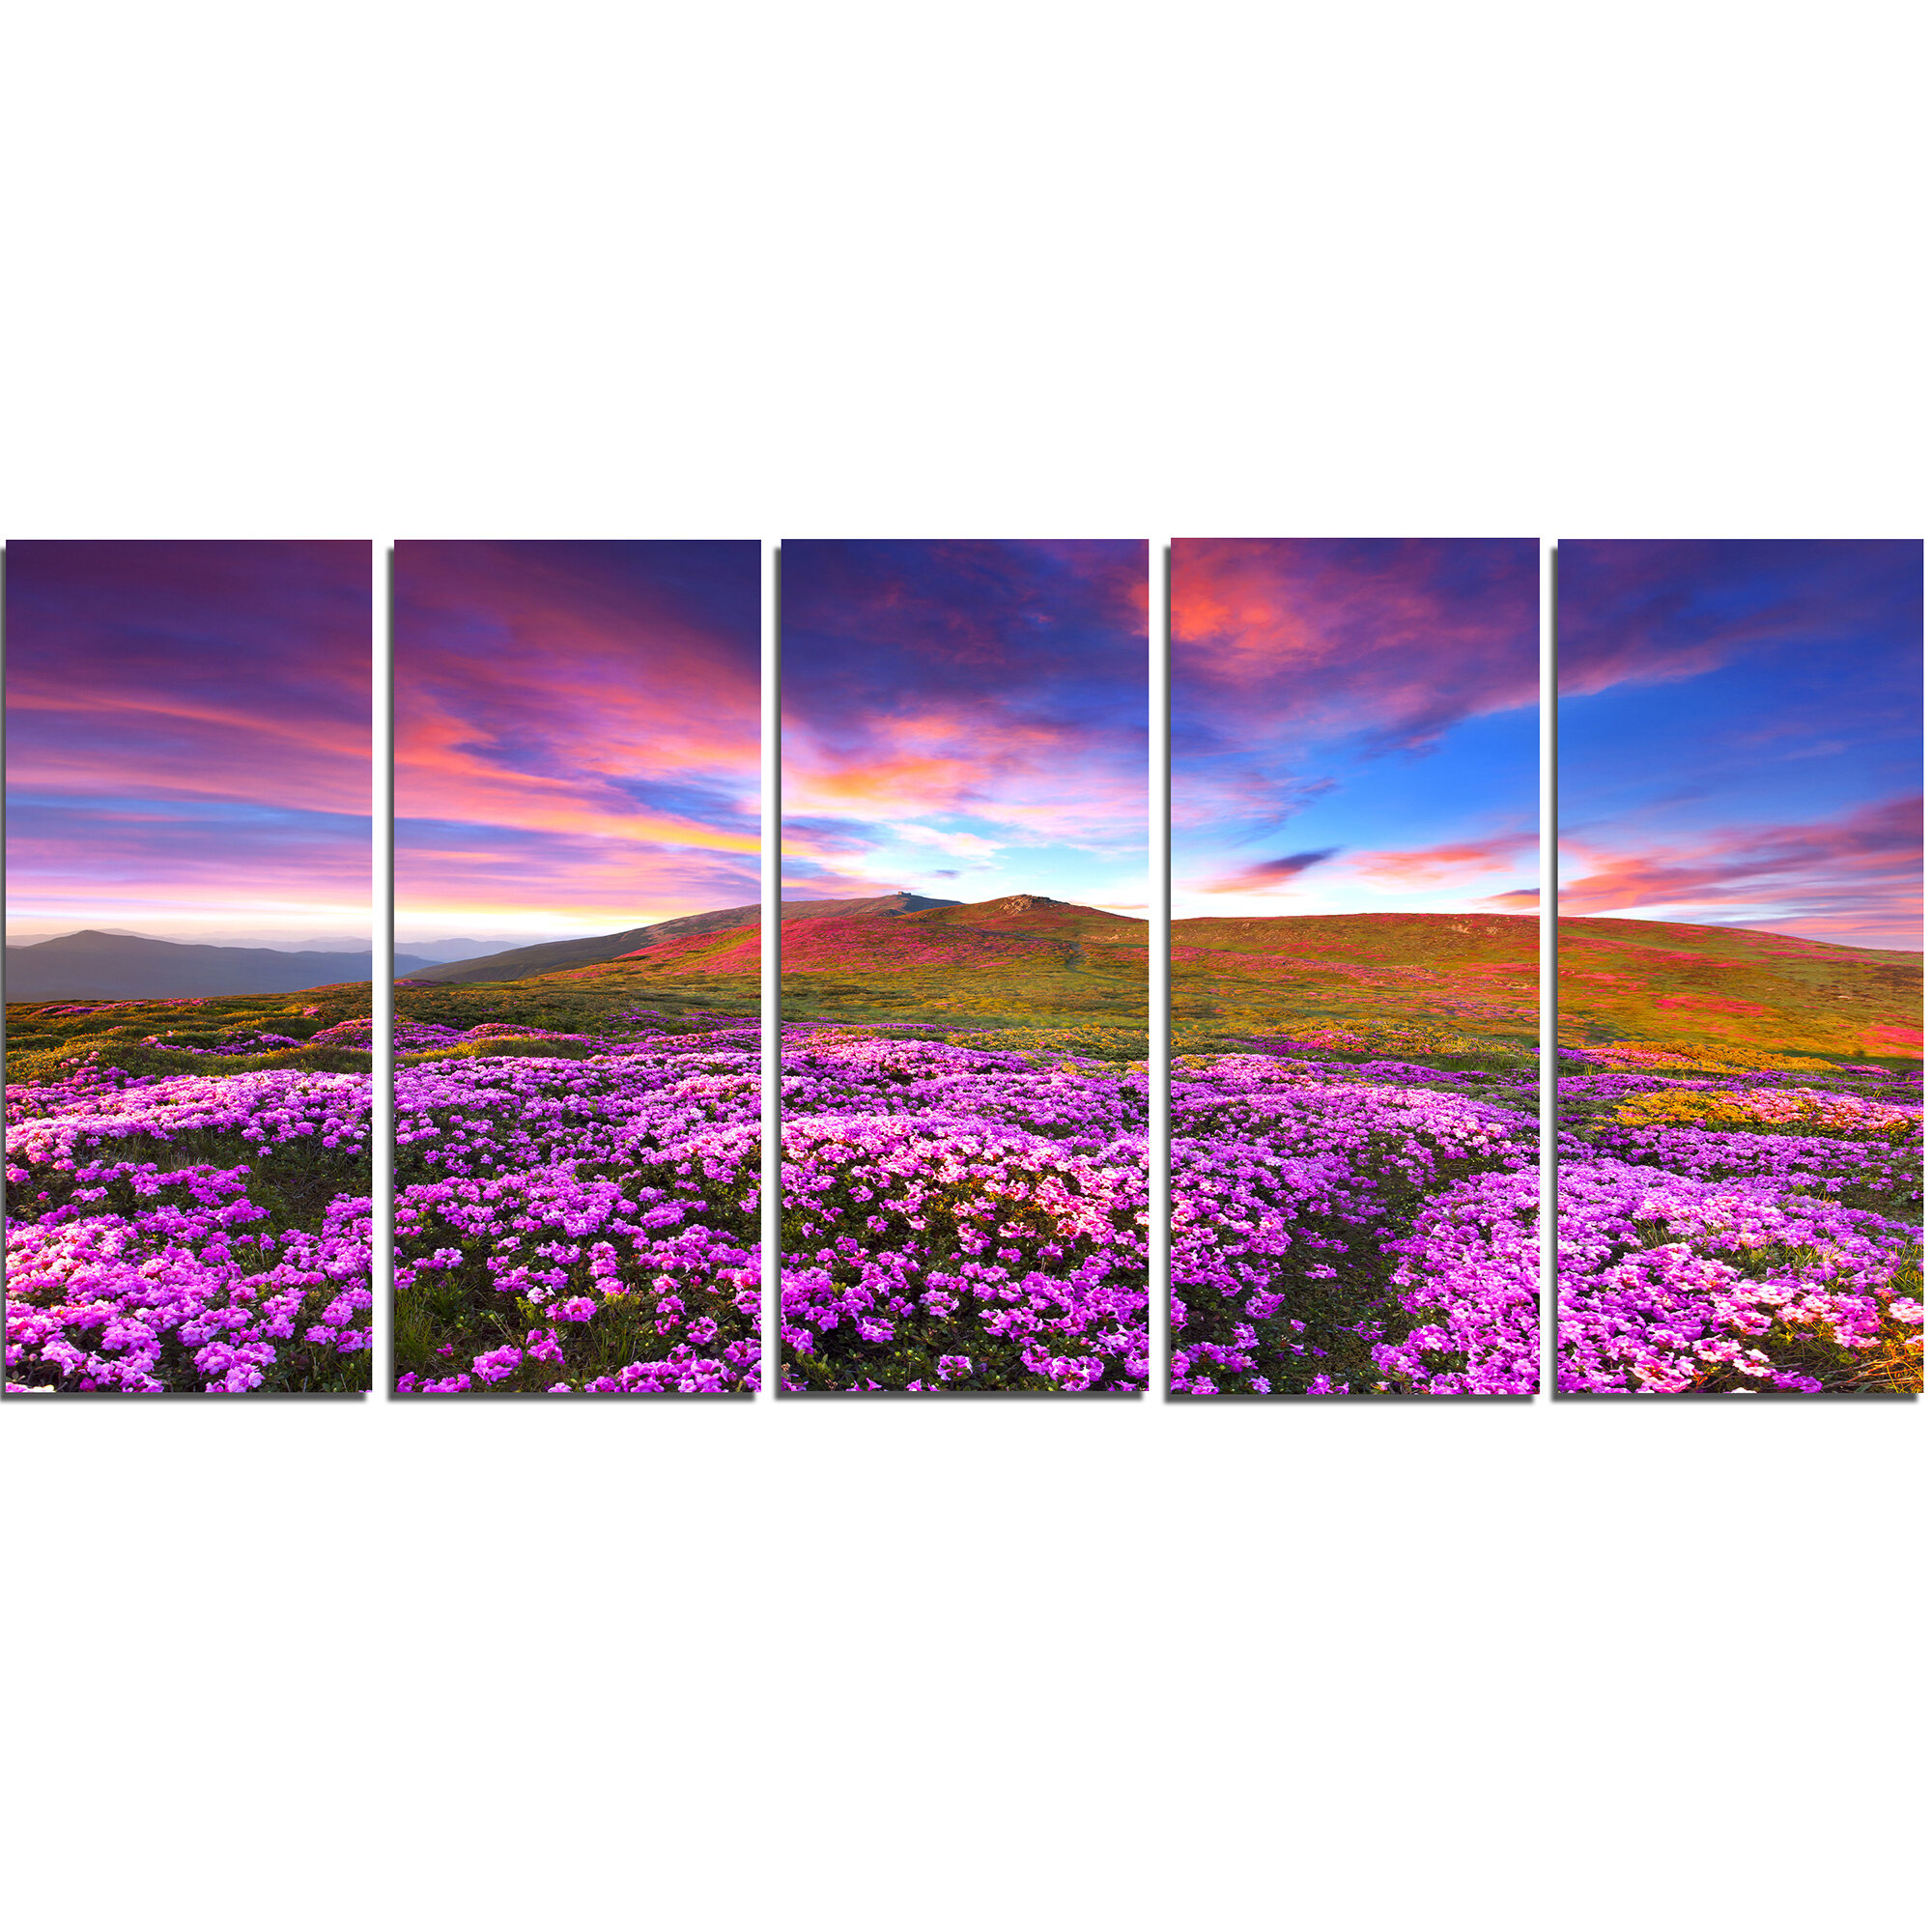 Designart Magic Pink Rhododendron Flowers 5 Piece Photographic Print On Wrapped Canvas Set Wayfair